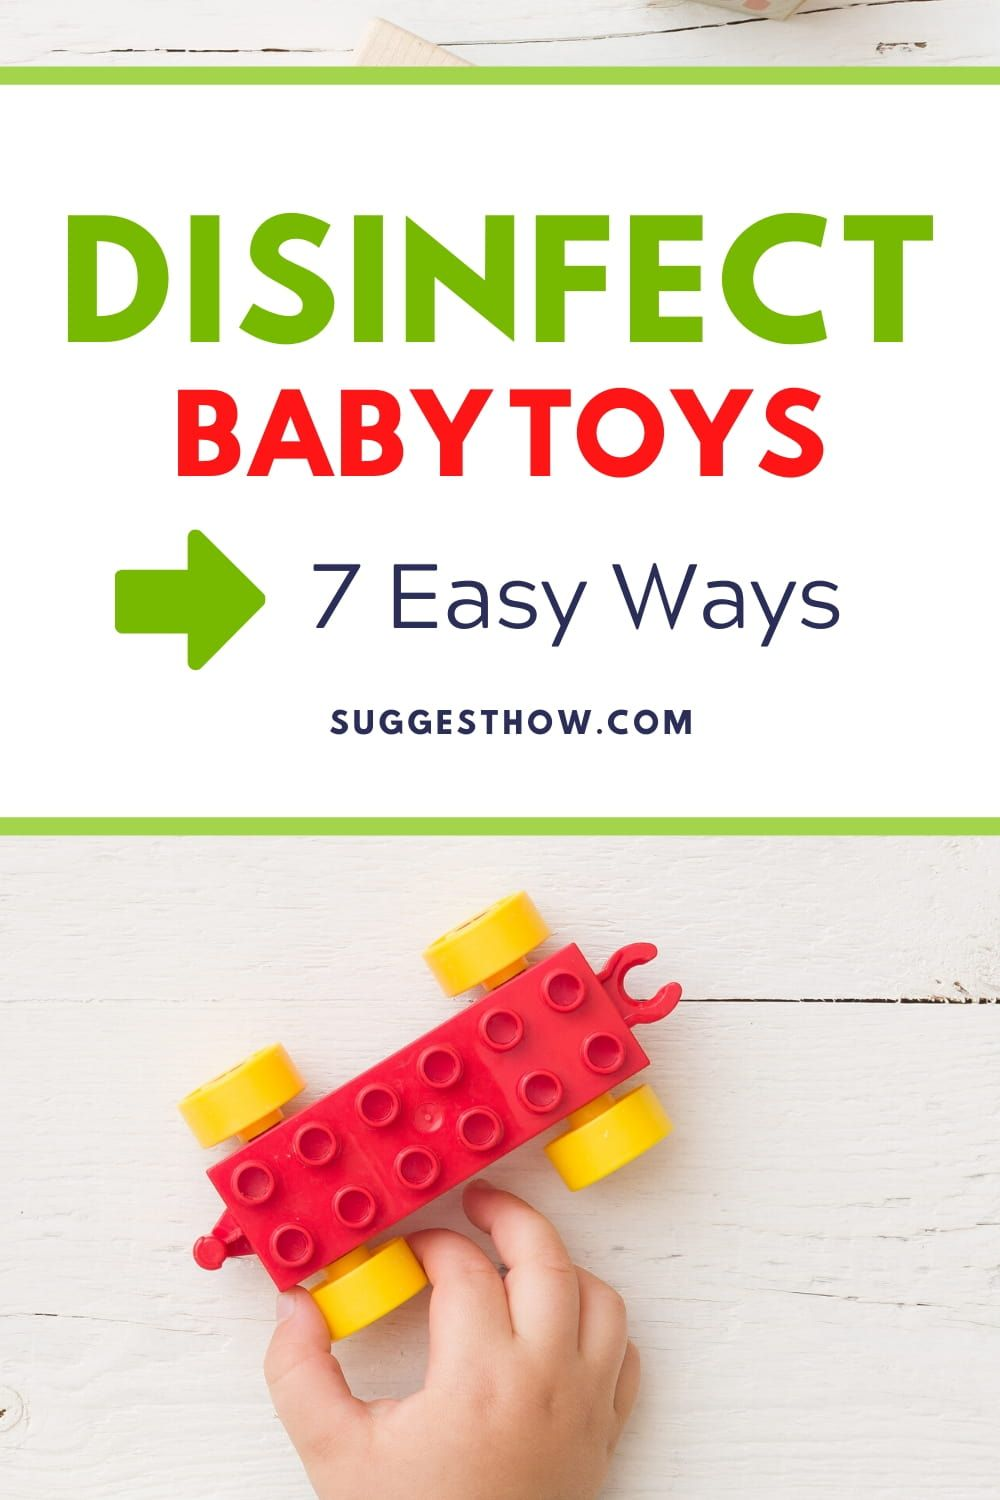 How to disinfect baby toys properly 7 methods to try in